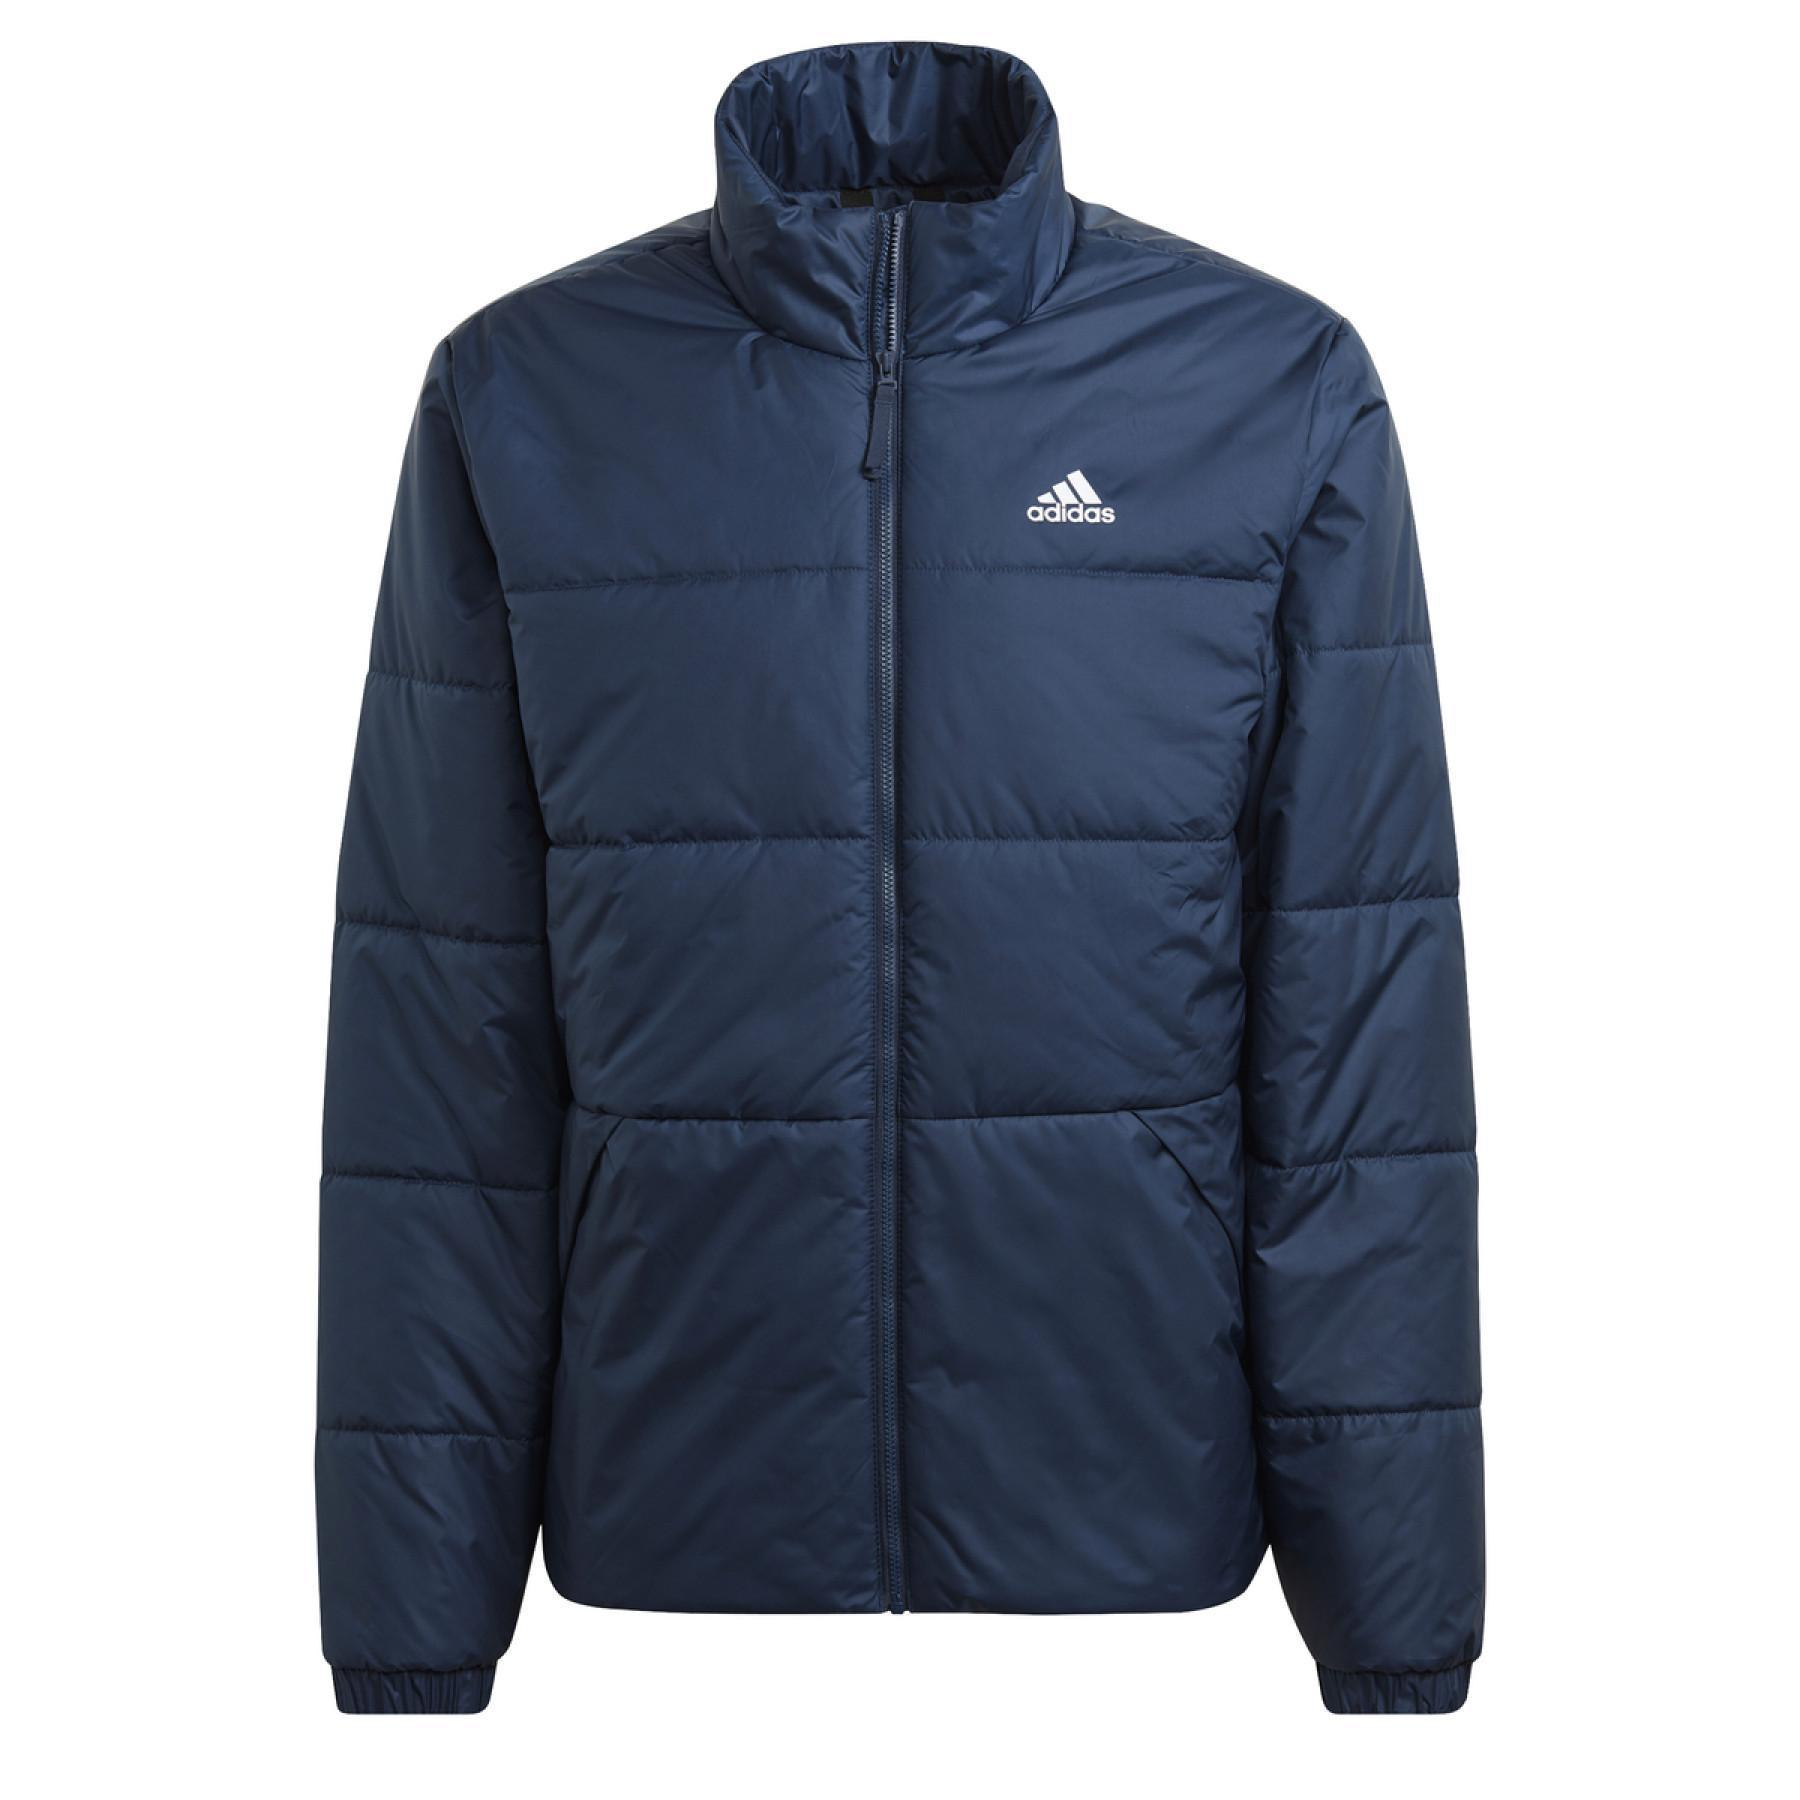 Jacket adidas BSC 3-Bandes Insulated Winter